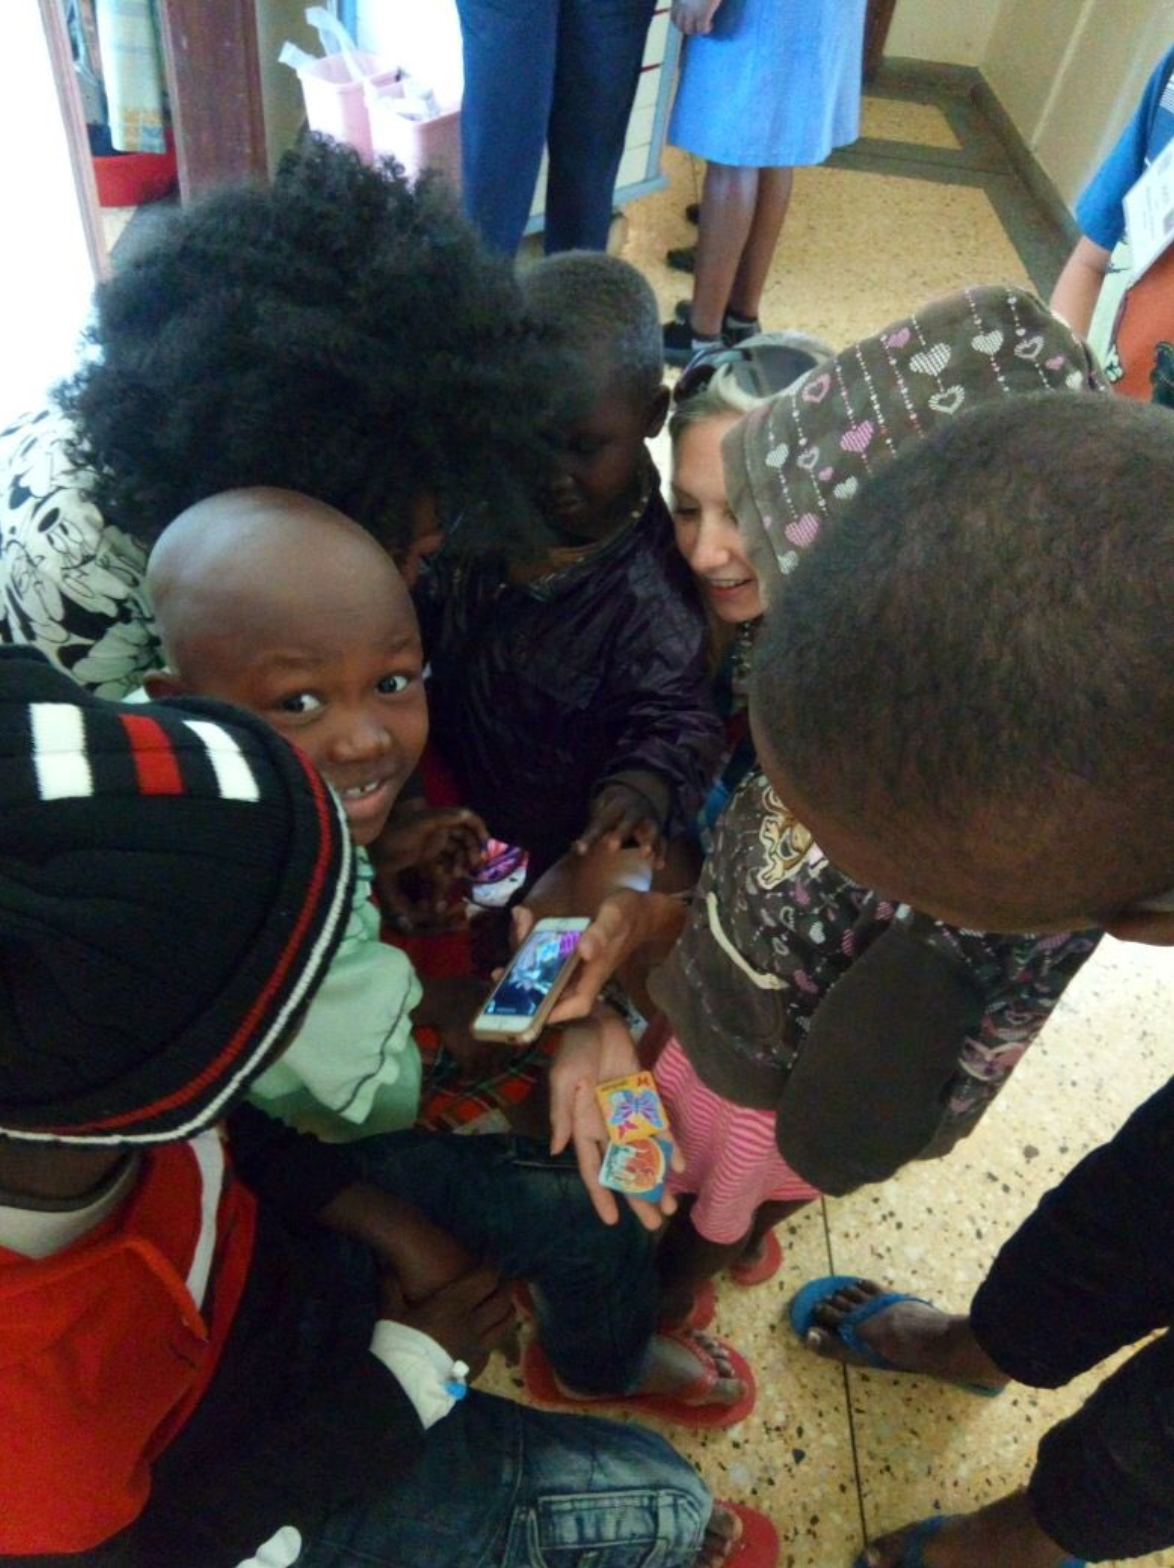 Morgan introducing SpellBound to the patients in Kenya. Photo provided by Morgan Livingstone.